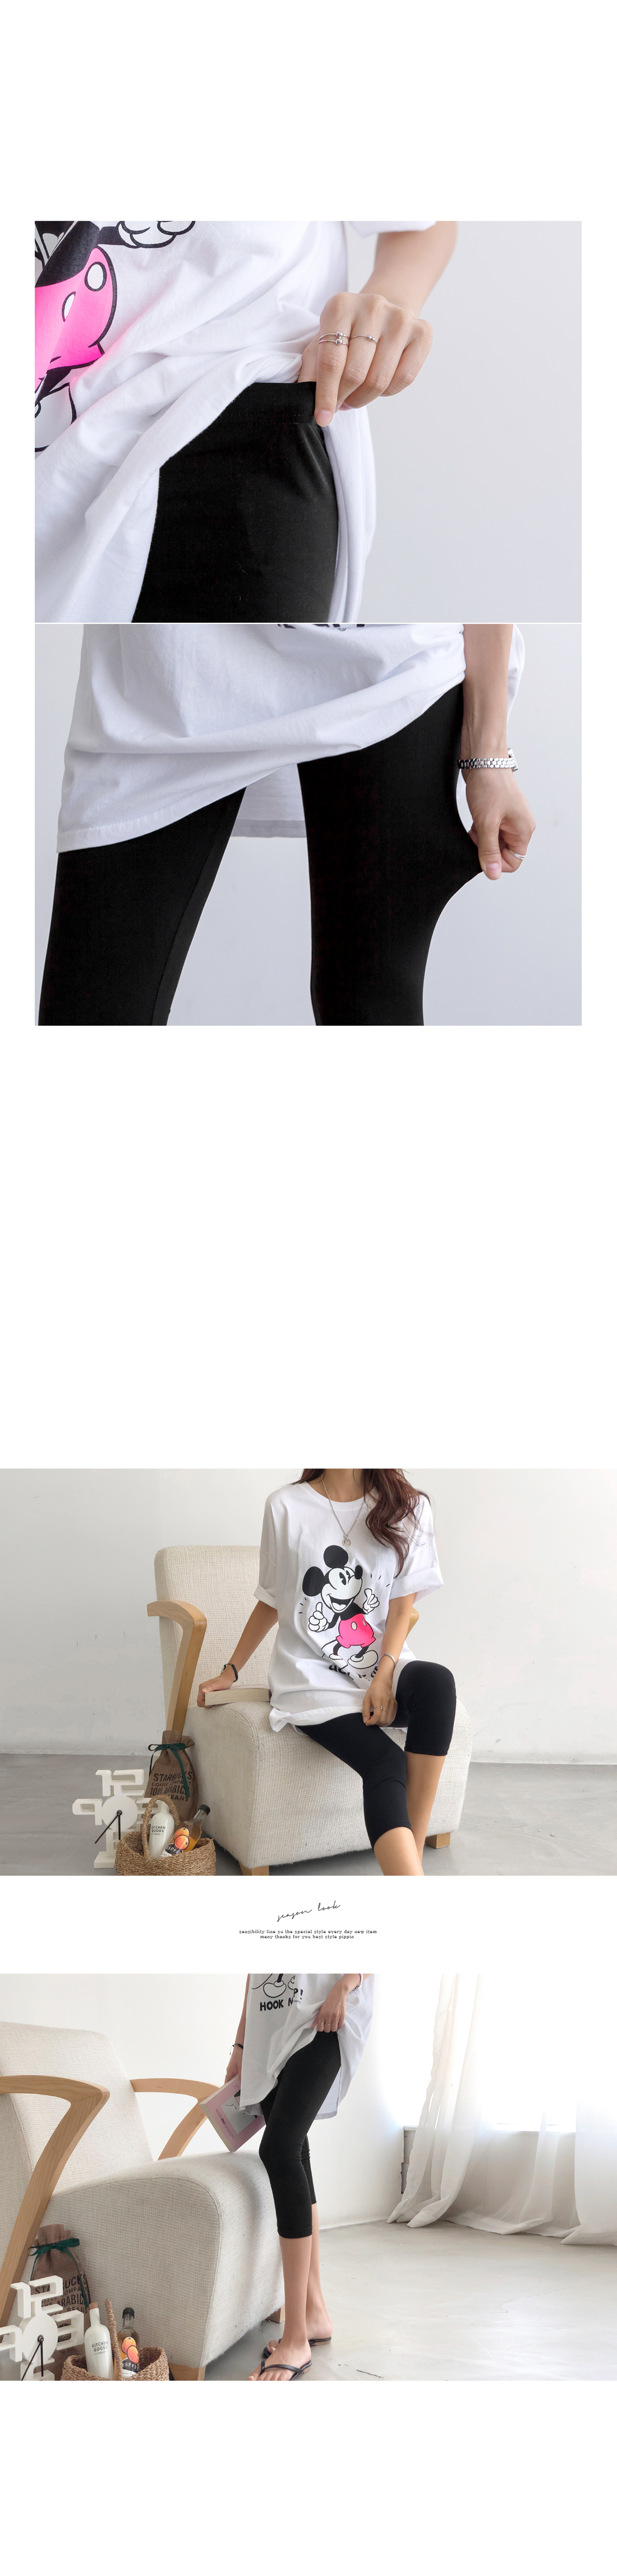 Daily Ice Part 7 leggings #73822 size F/L available